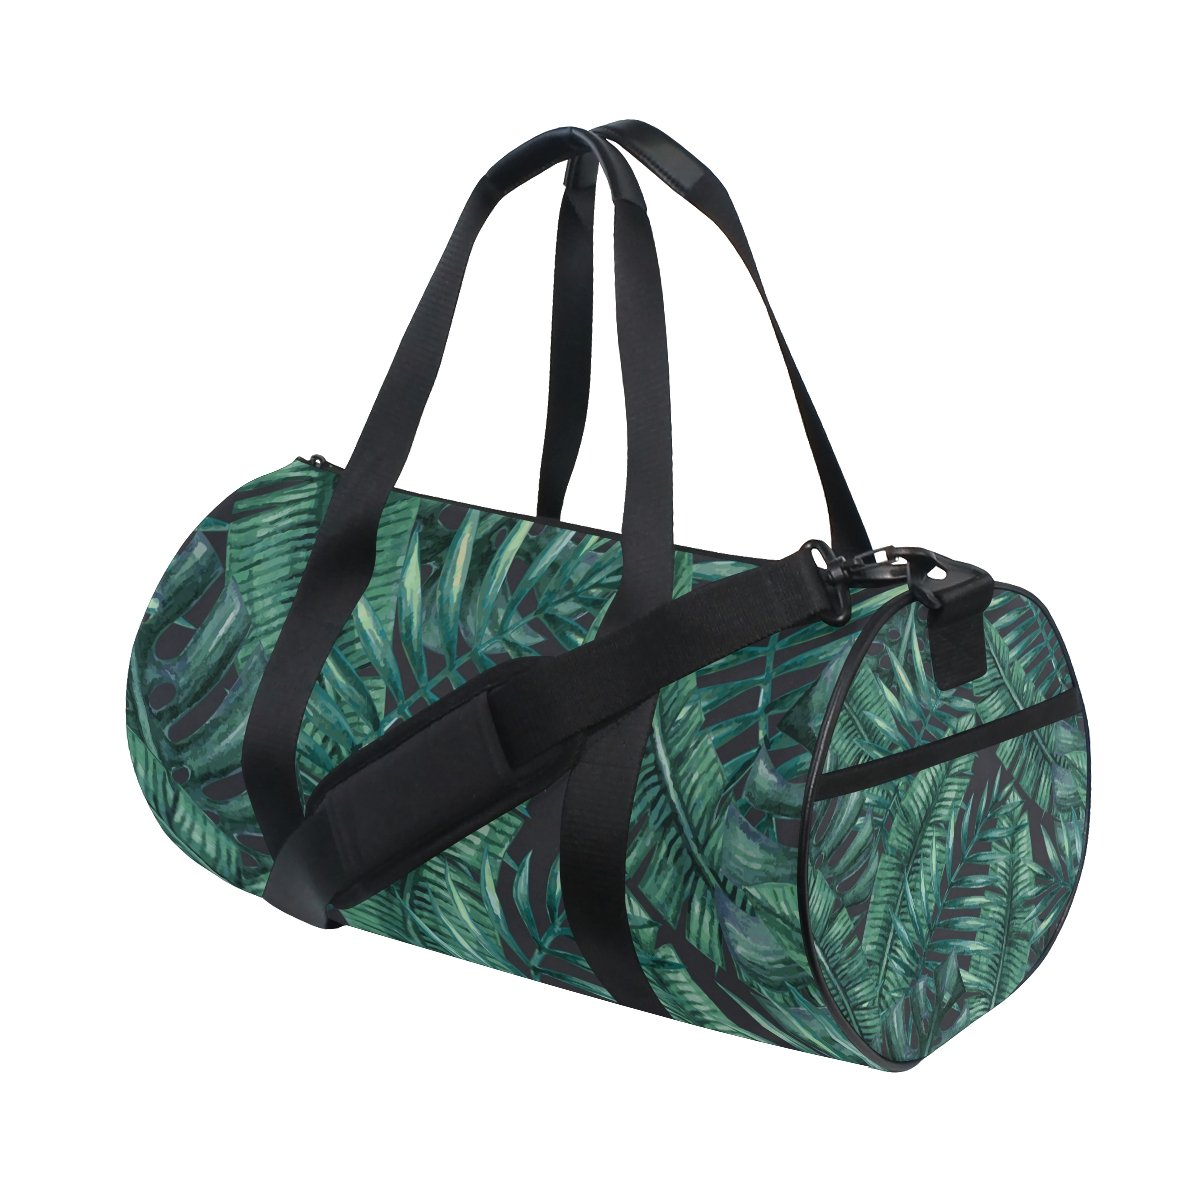 ALAZA Tropical Palm Leaves Travel Sports Bag with Backpack Tote Gym Bag